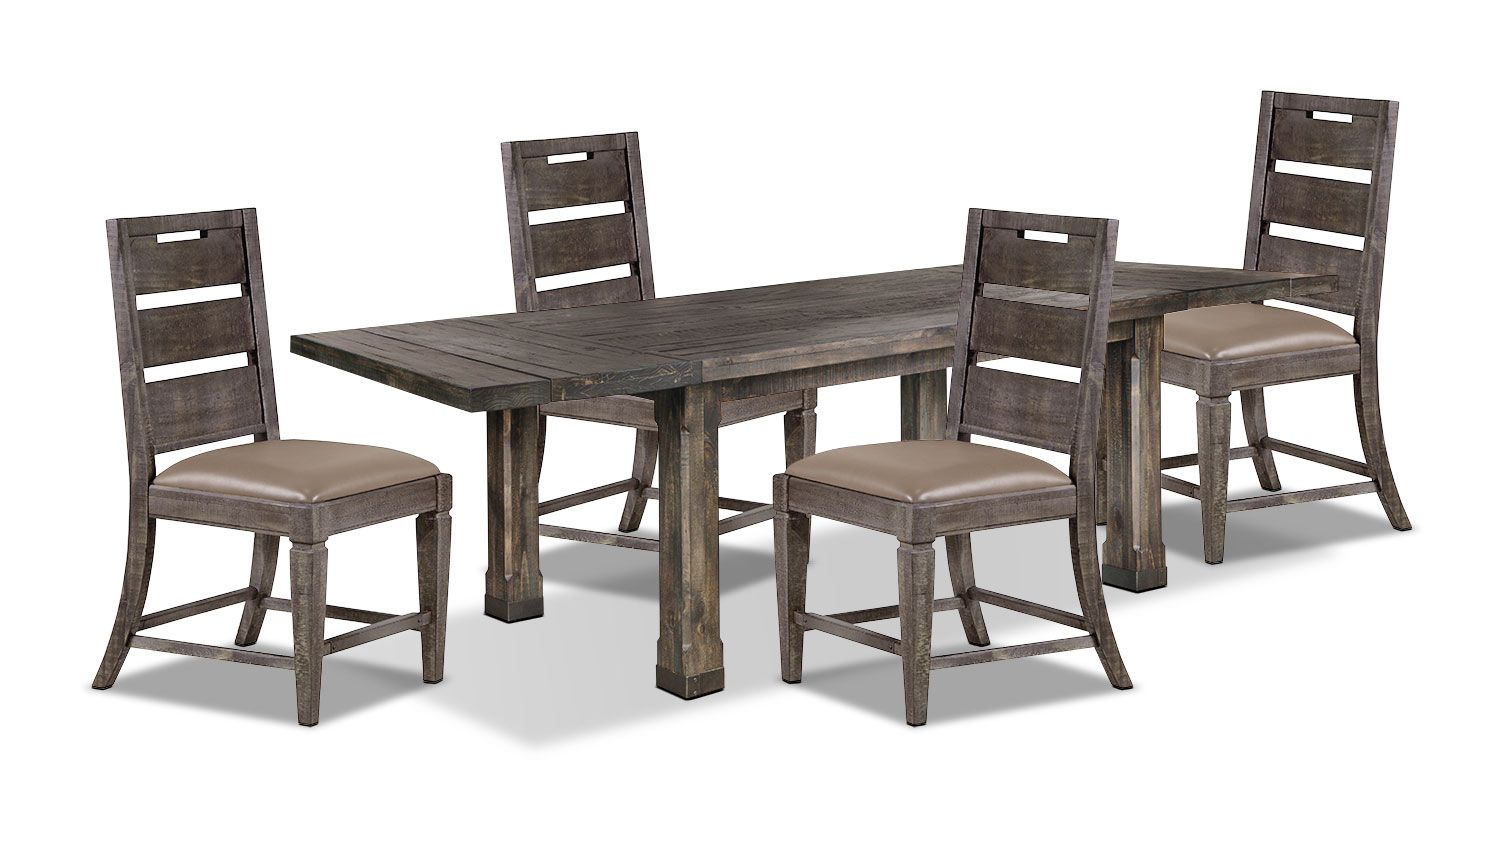 Calistoga 5 Piece Dining Package Dining Dining Set Dining Room Furniture